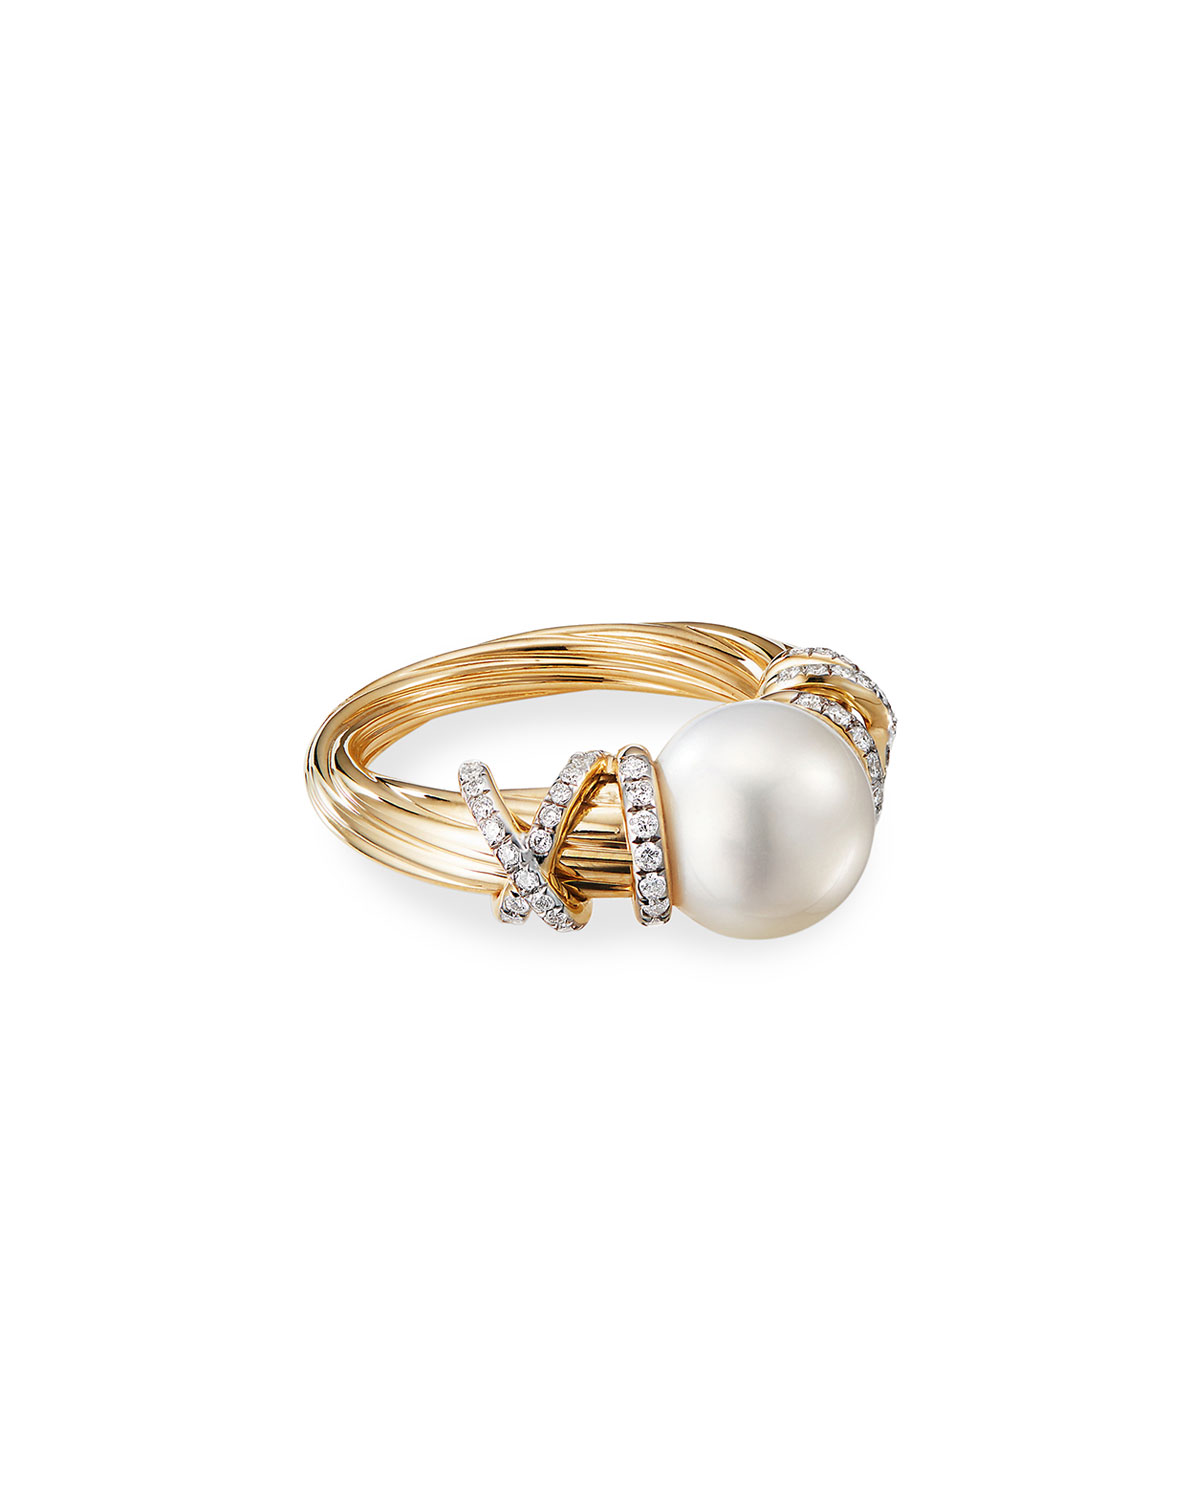 David Yurman Helena 18k Pearl & Diamond Ring, Size 7